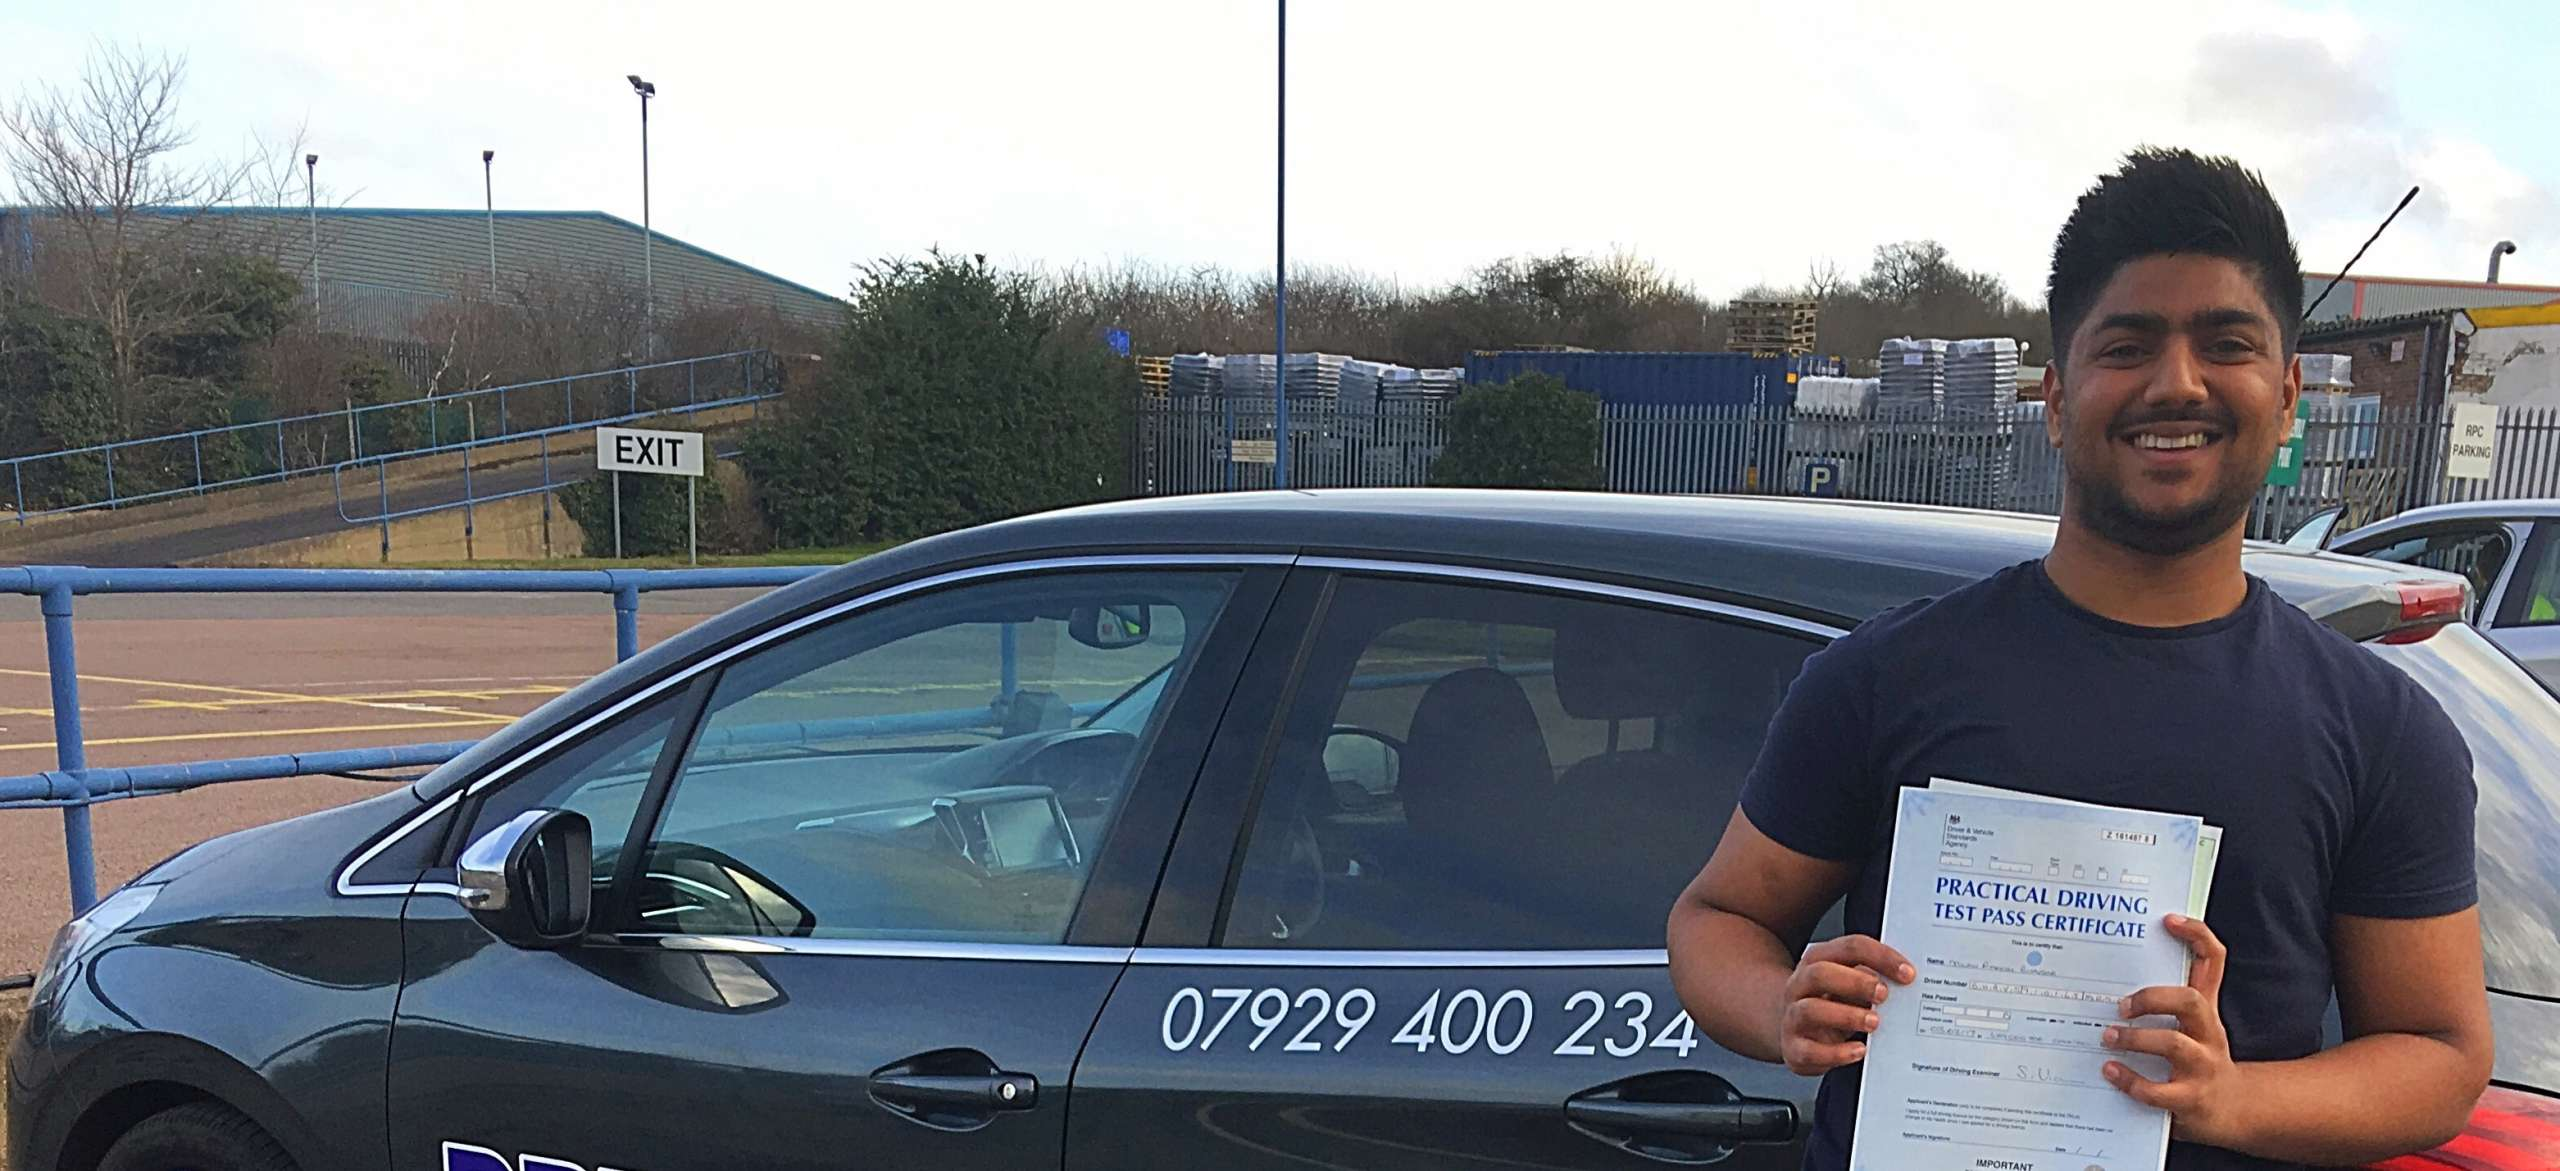 driving lessons leicester - Panchal Driving Academy - Milan Bhavsar